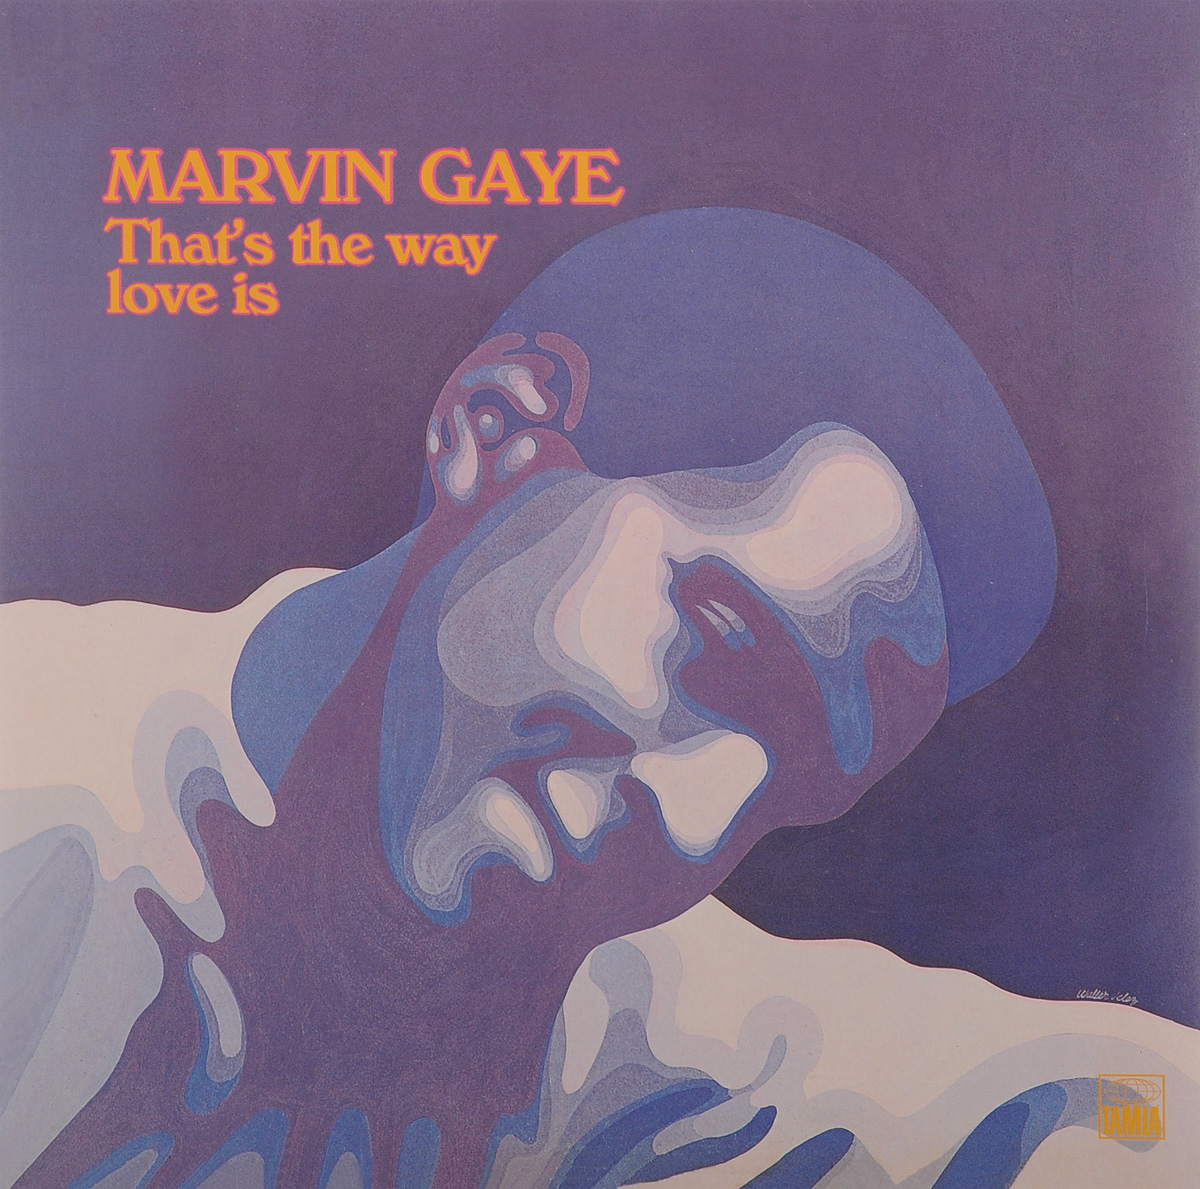 Марвин Гэй Marvin Gaye. That's The Way Love Is (LP) марвин гэй marvin gaye volume jne 1961 1965 7 lp